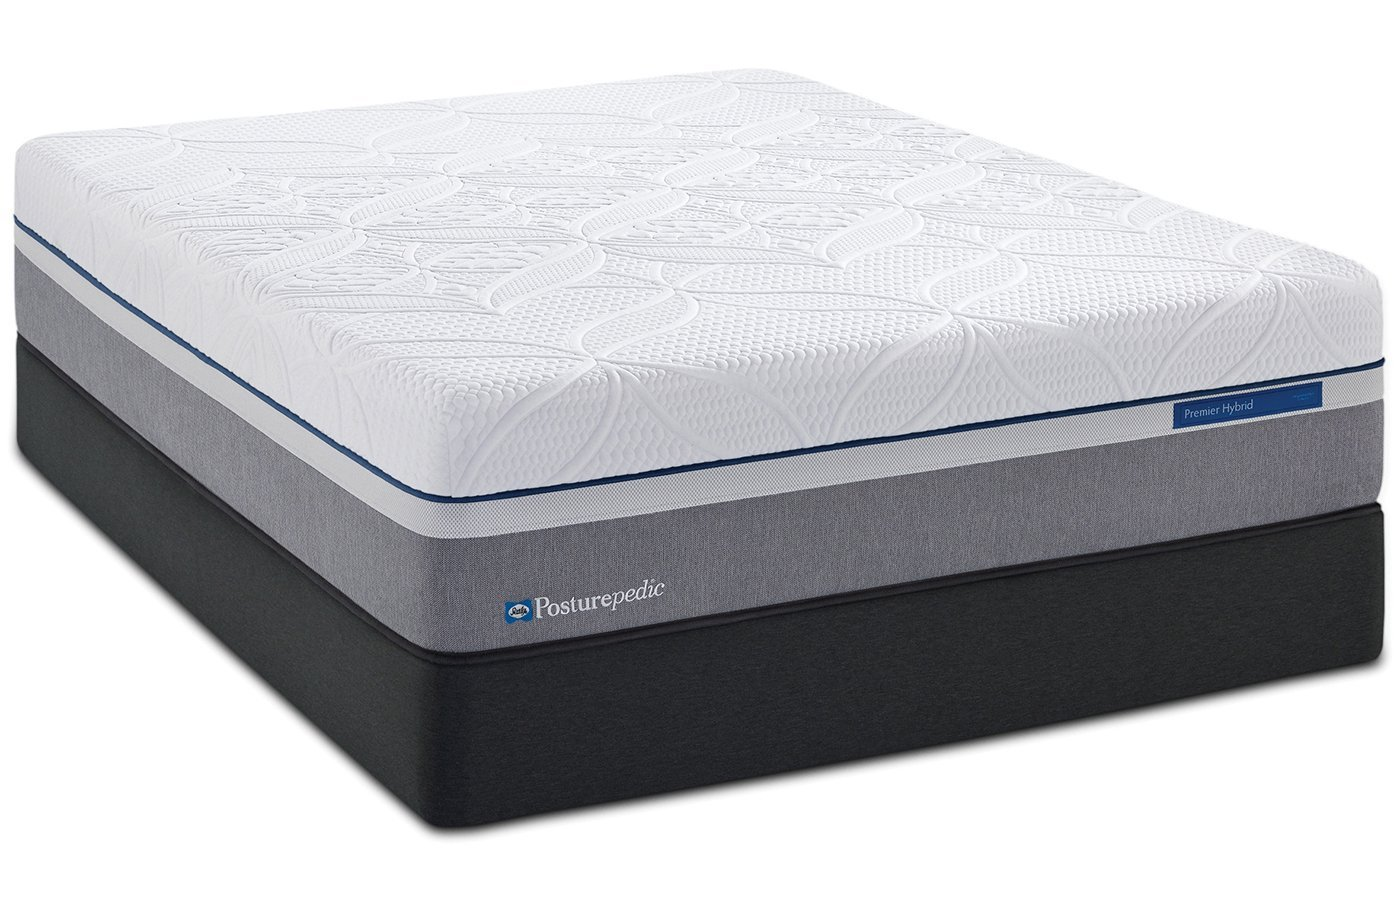 Queen Sealy Posturepedic Hybrid Gold Ultra Plush Mattress Set